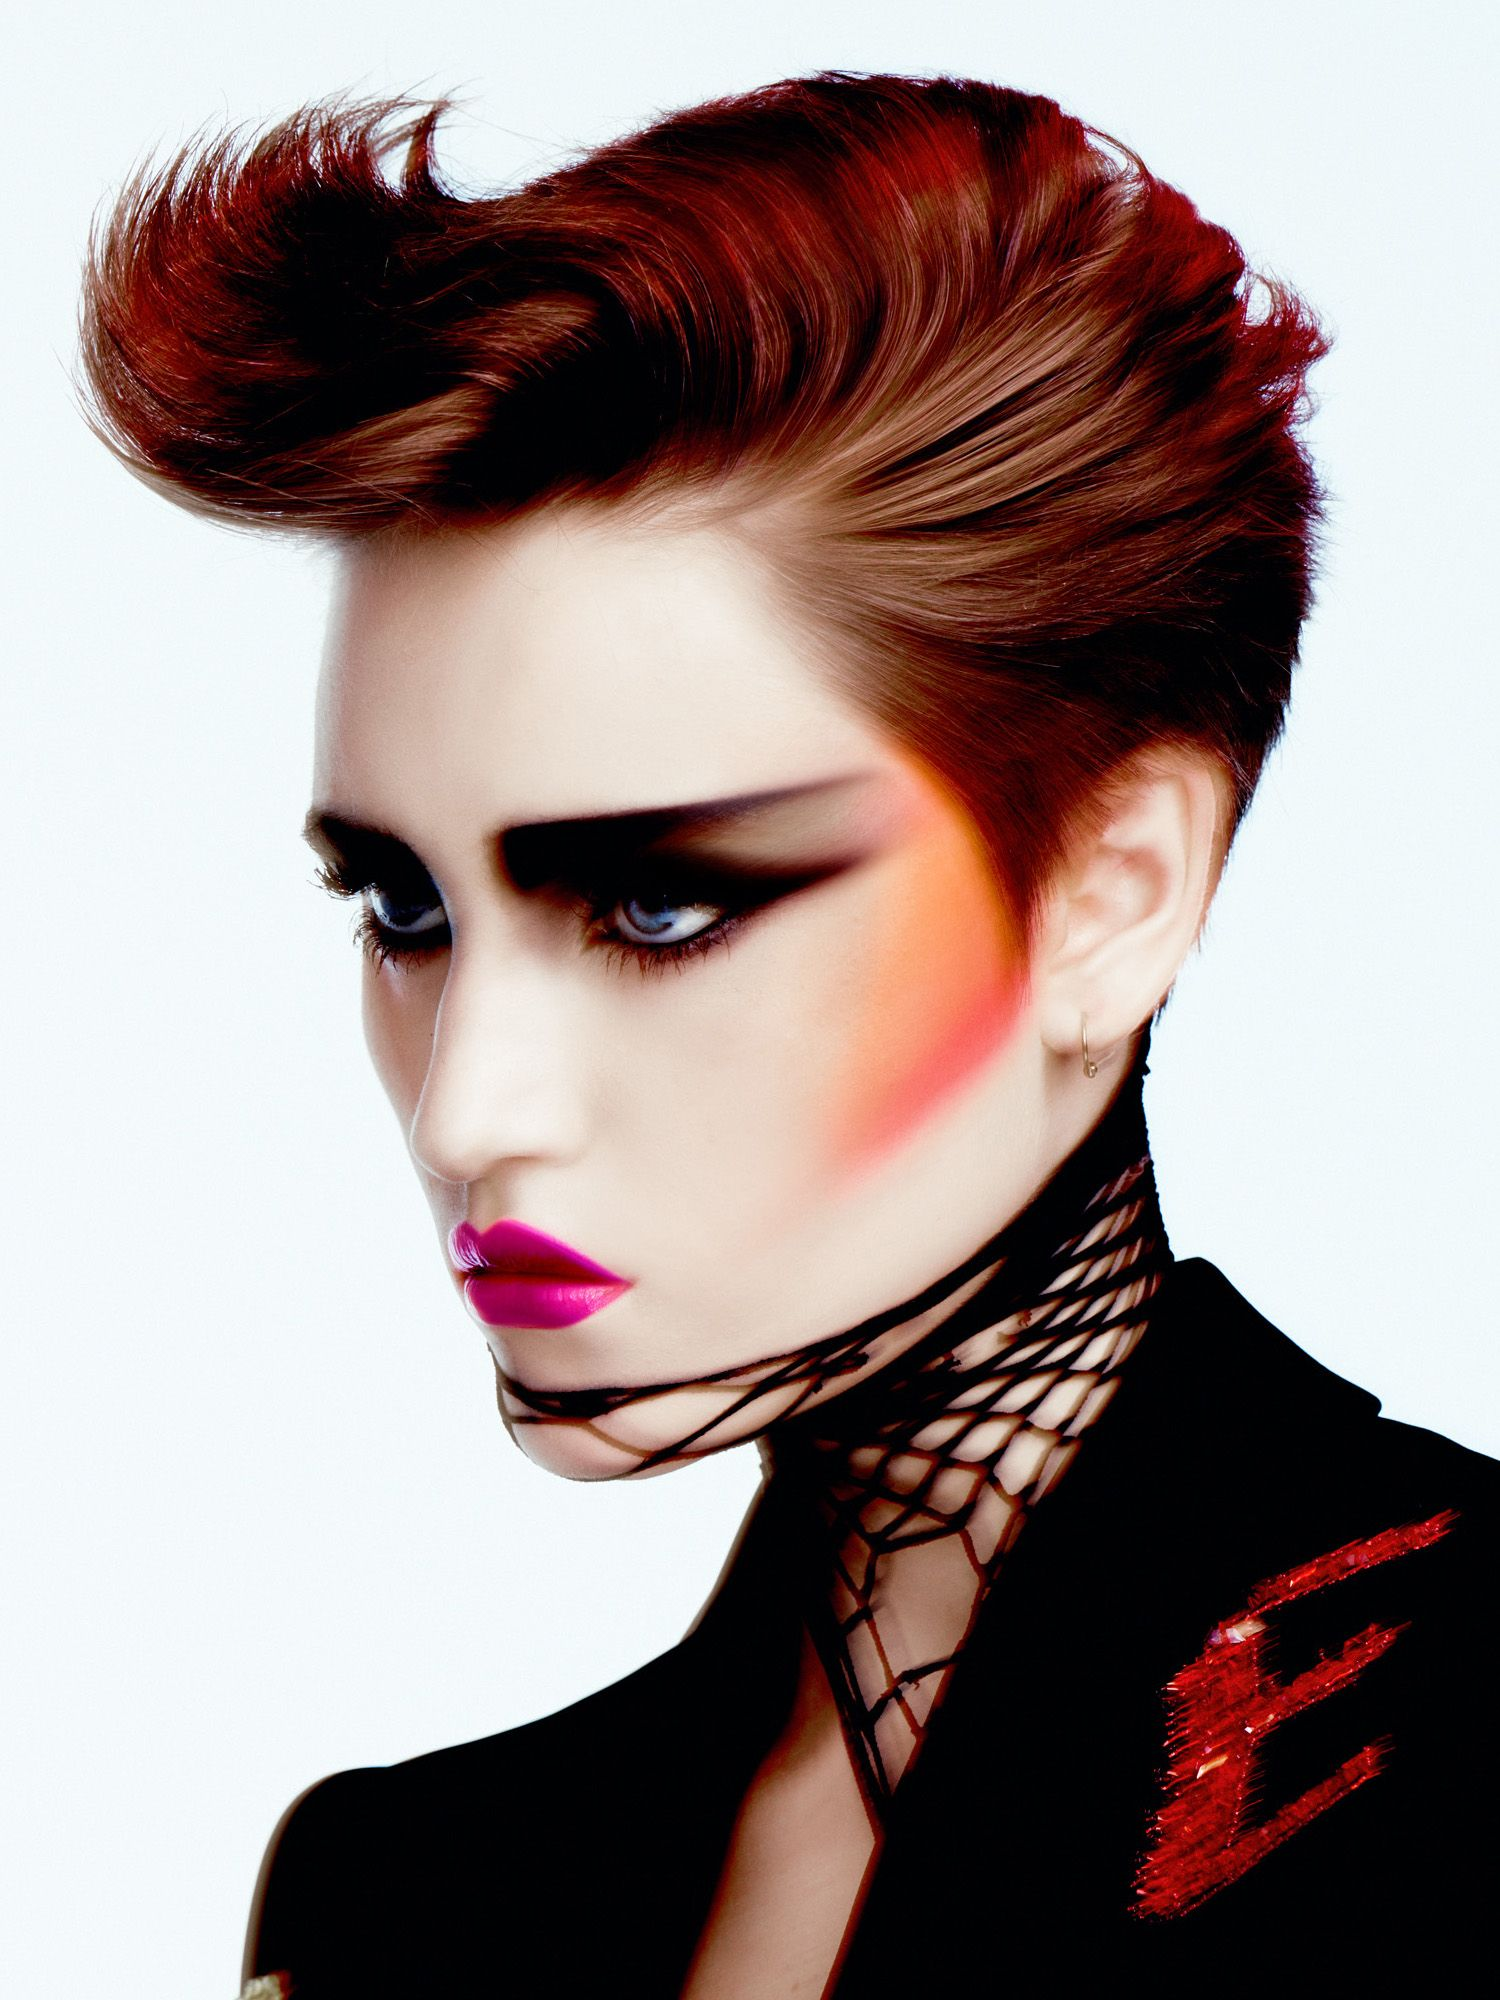 Dark Vibes - No discretion here with over the tops brows in geometric shapes and bright hot pink lips. #makeup #80's